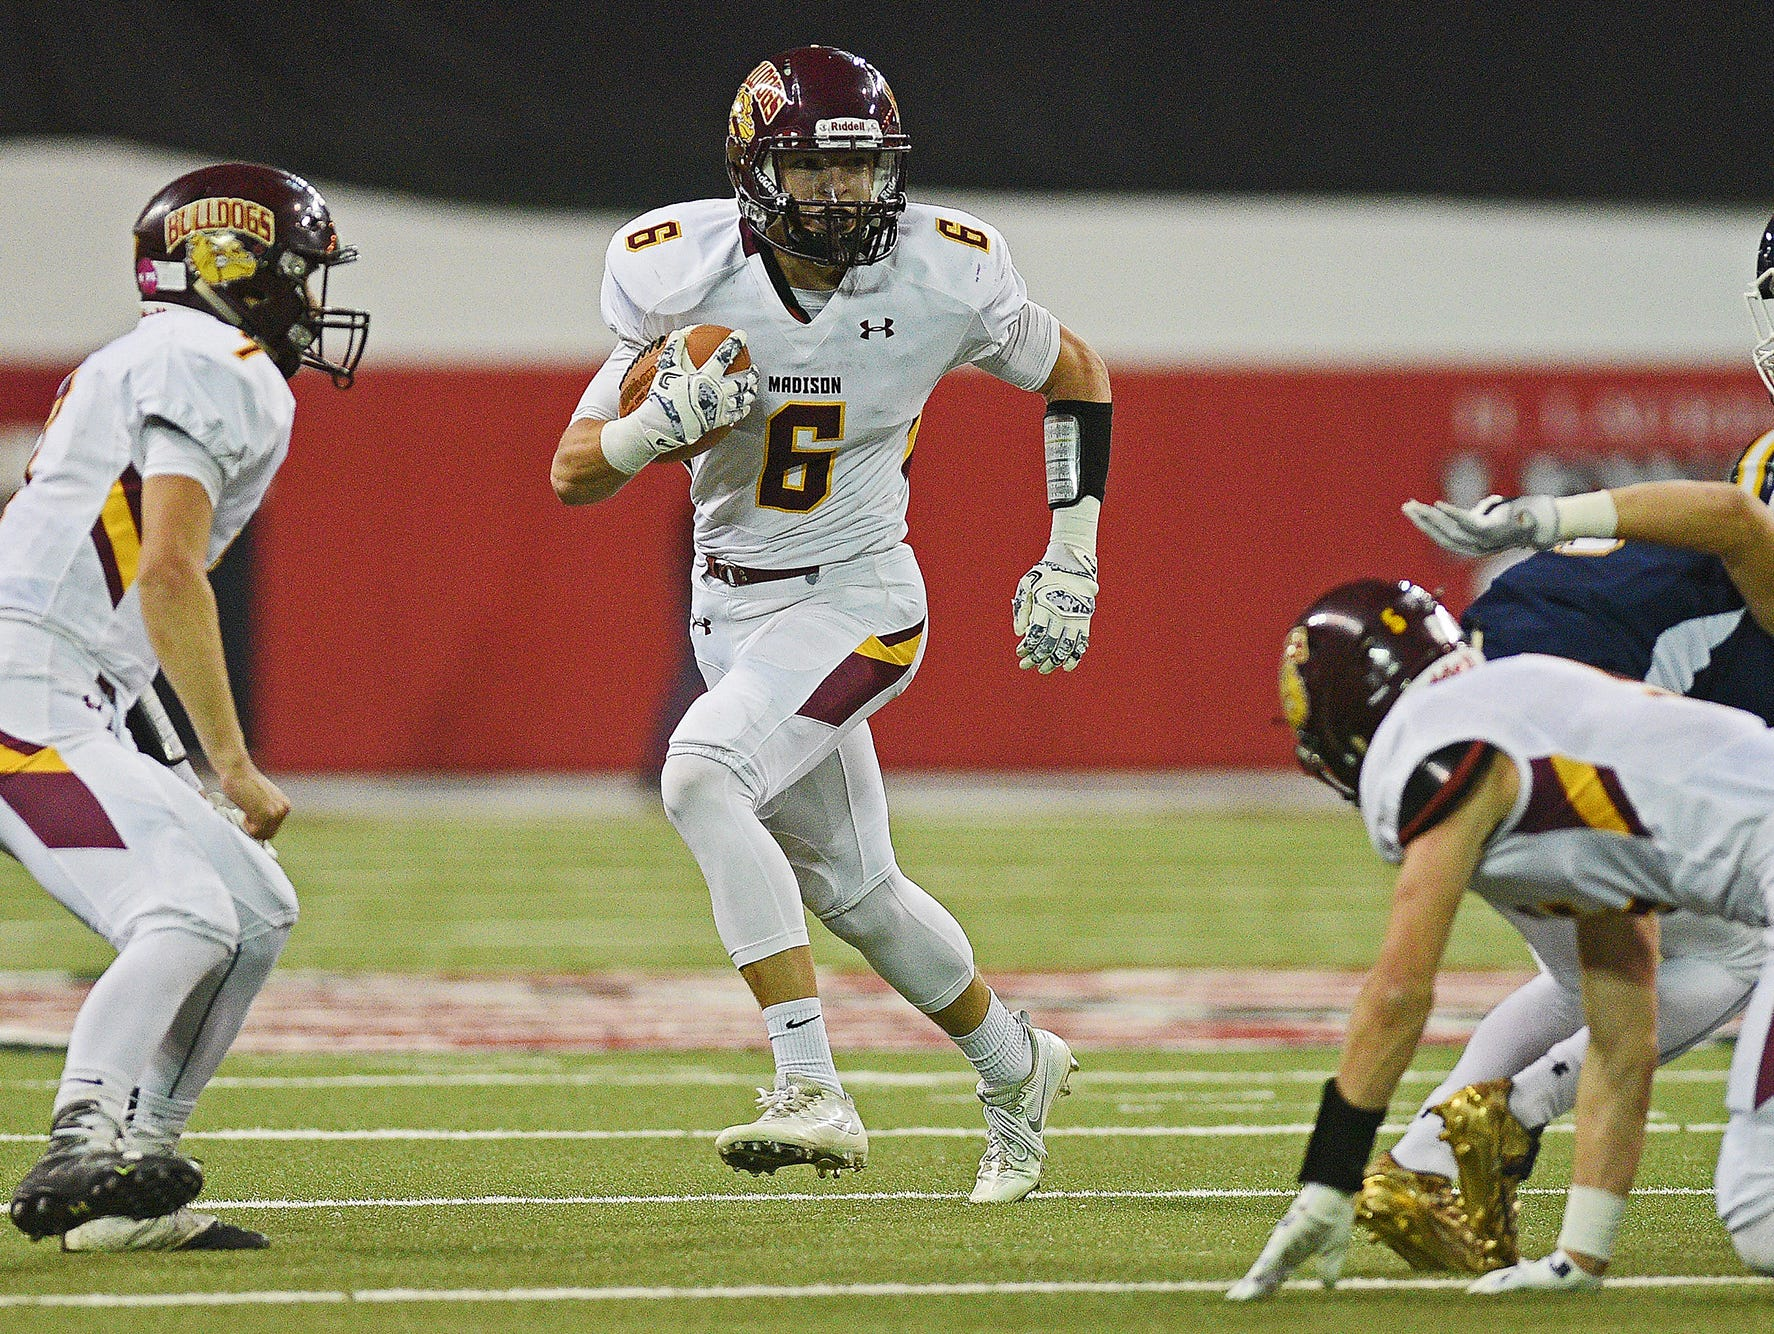 Madison's Jaxon Janke (6) carries the ball in for a touchdown during the 2016 South Dakota State Class 11A Football Championship game against Tea Area Saturday, Nov. 12, 2016, at the DakotaDome on the University of South Dakota campus in Vermillion, S.D.